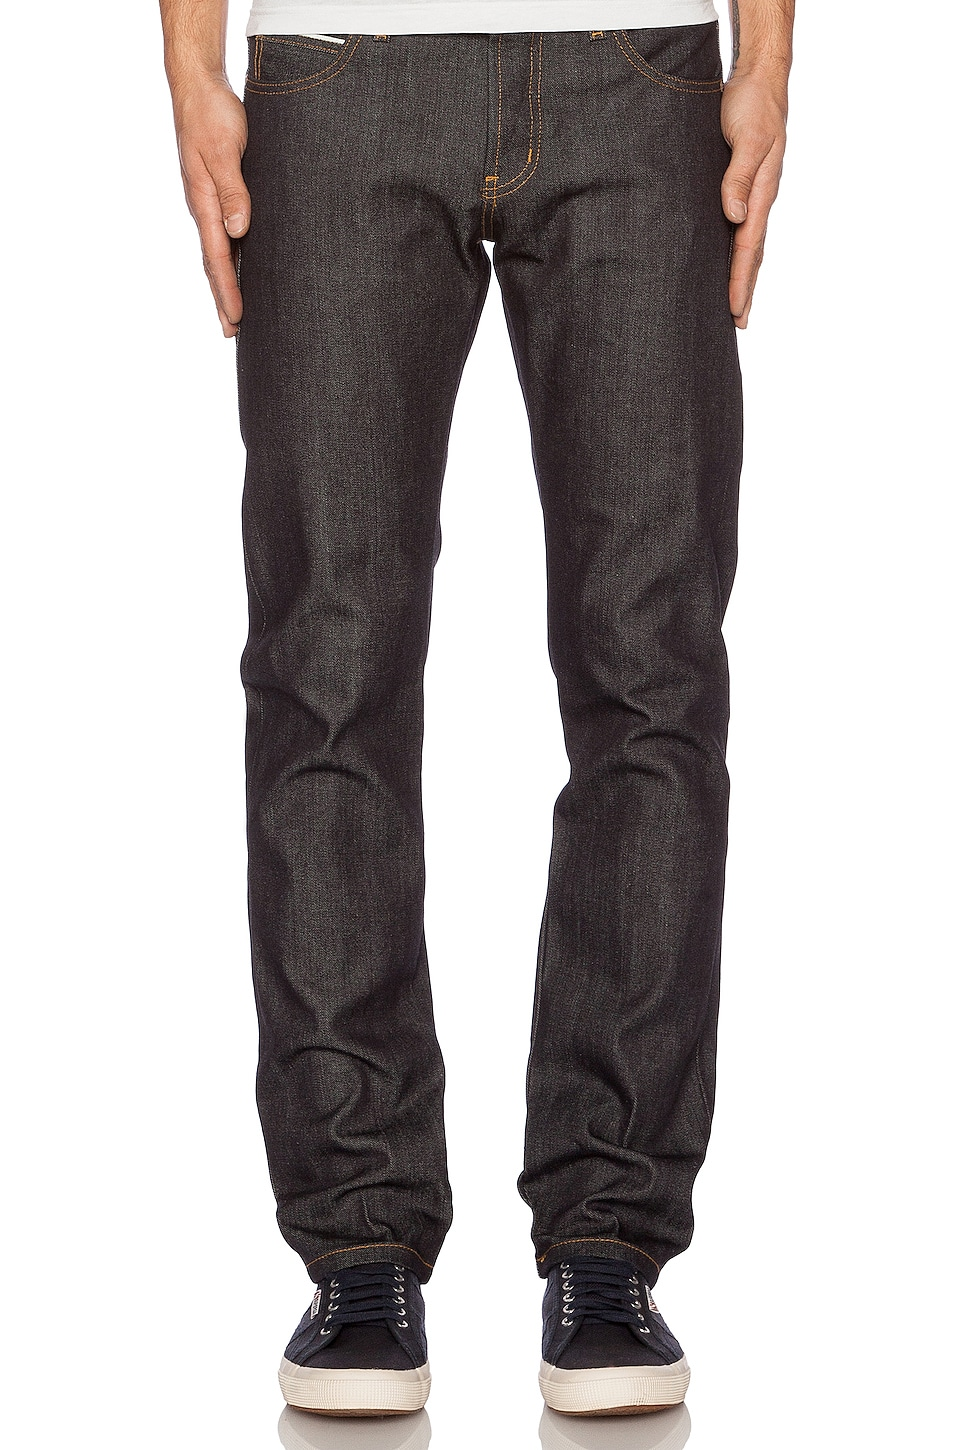 Super Skinny Guy in Left Hand Twill Selvedge 13.75 oz by Naked & Famous Denim